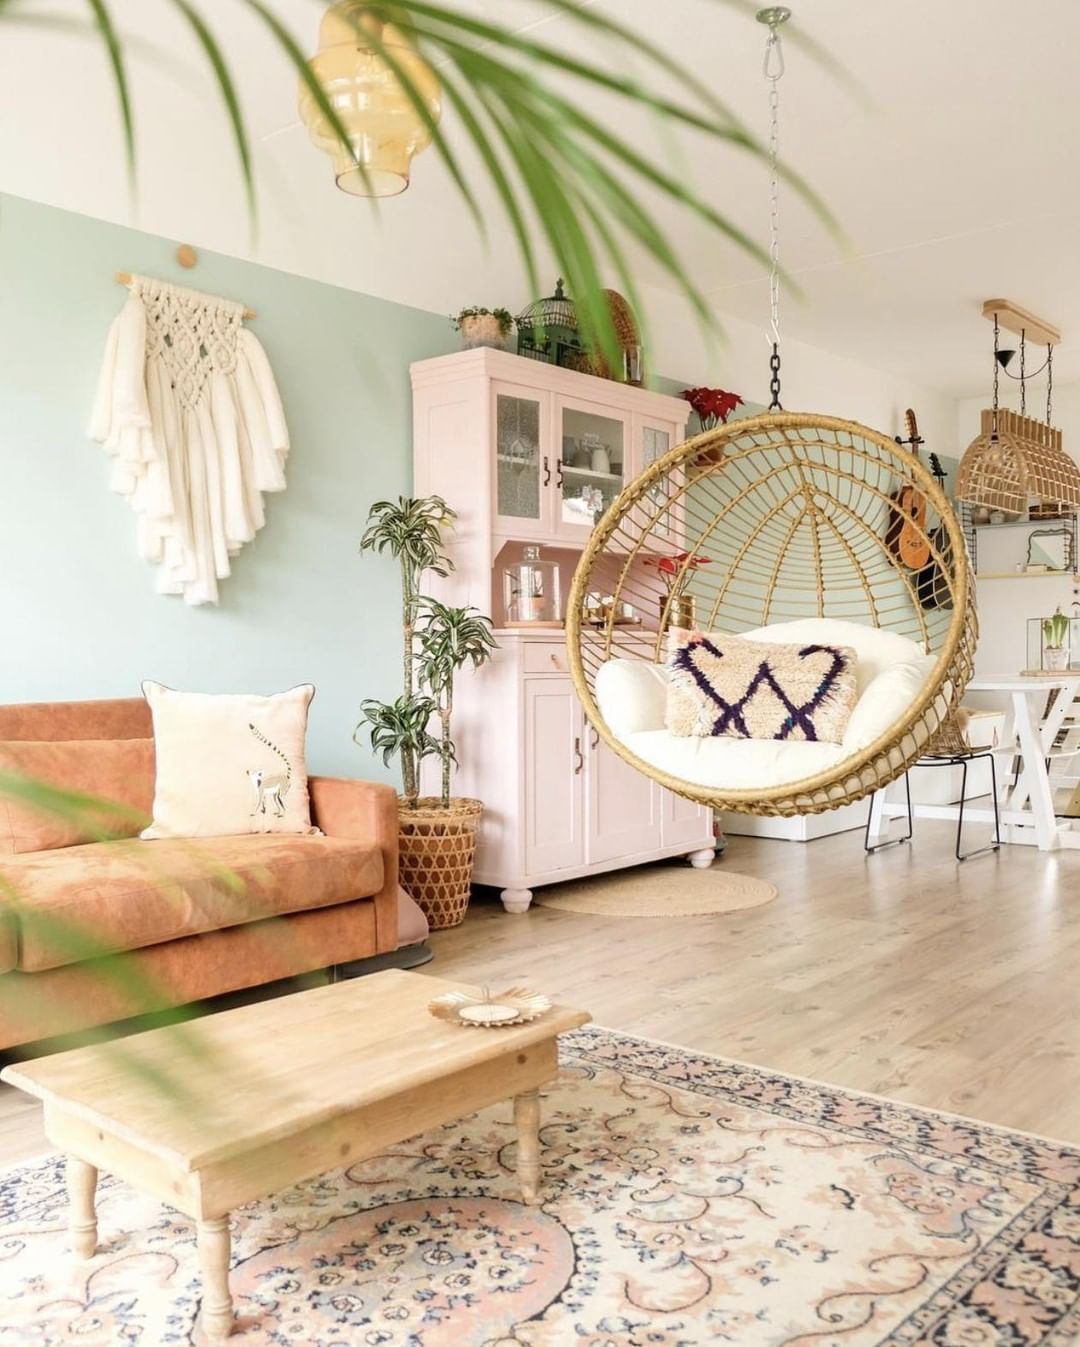 Apartment therapy on instagram who wants to hang out here literally image mirjam hart